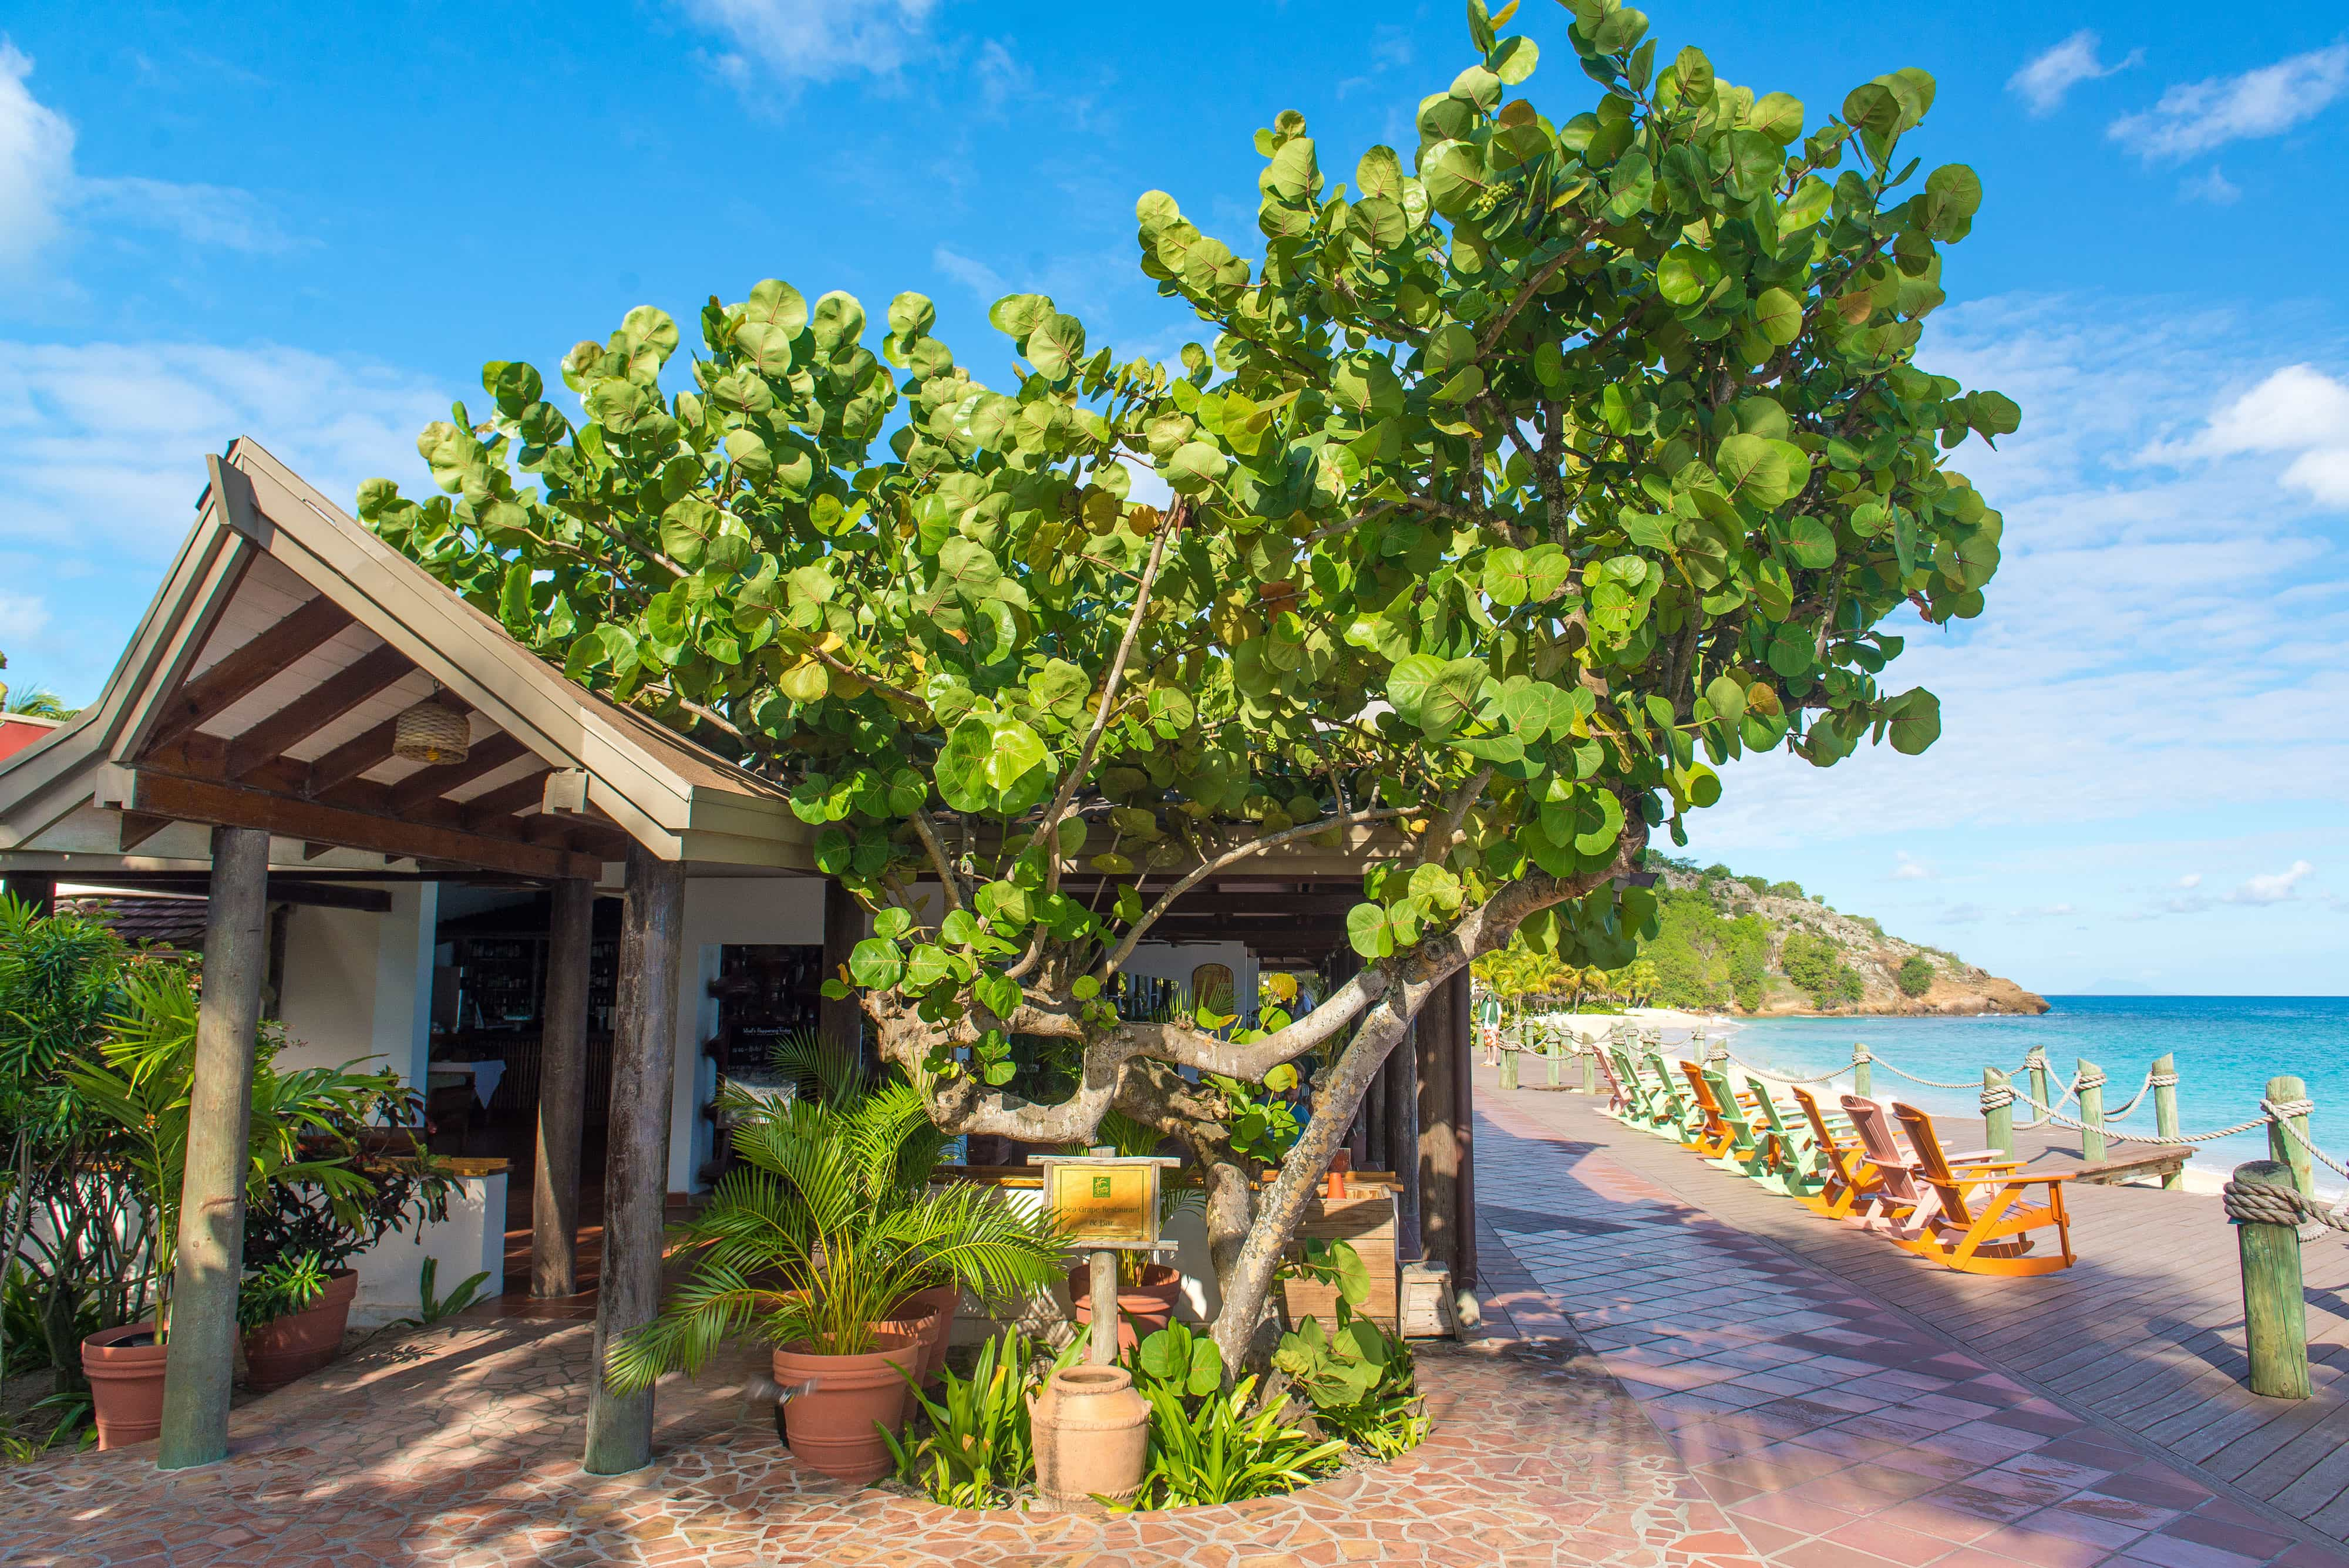 Dine and unwind in true Caribbean style beneath a seagrape tree.